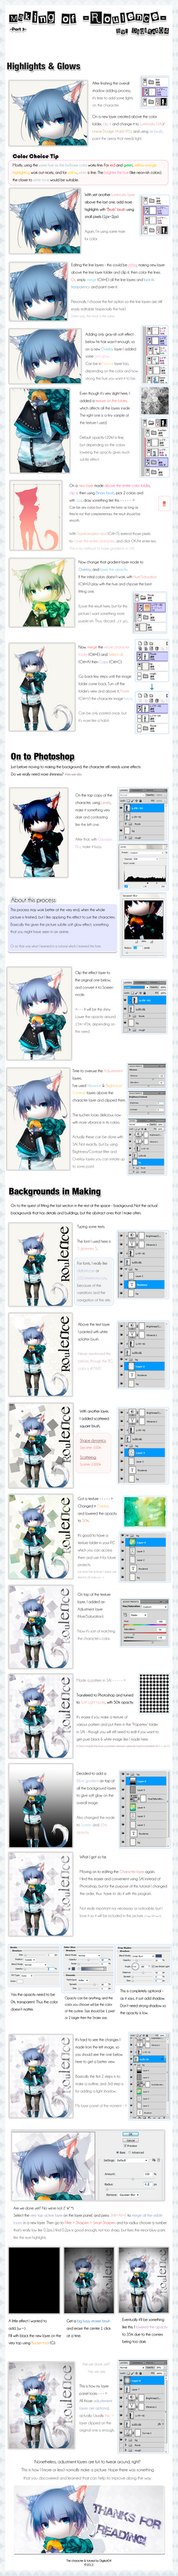 = Roulence: Tutorial 3/3 = by DigiKat04